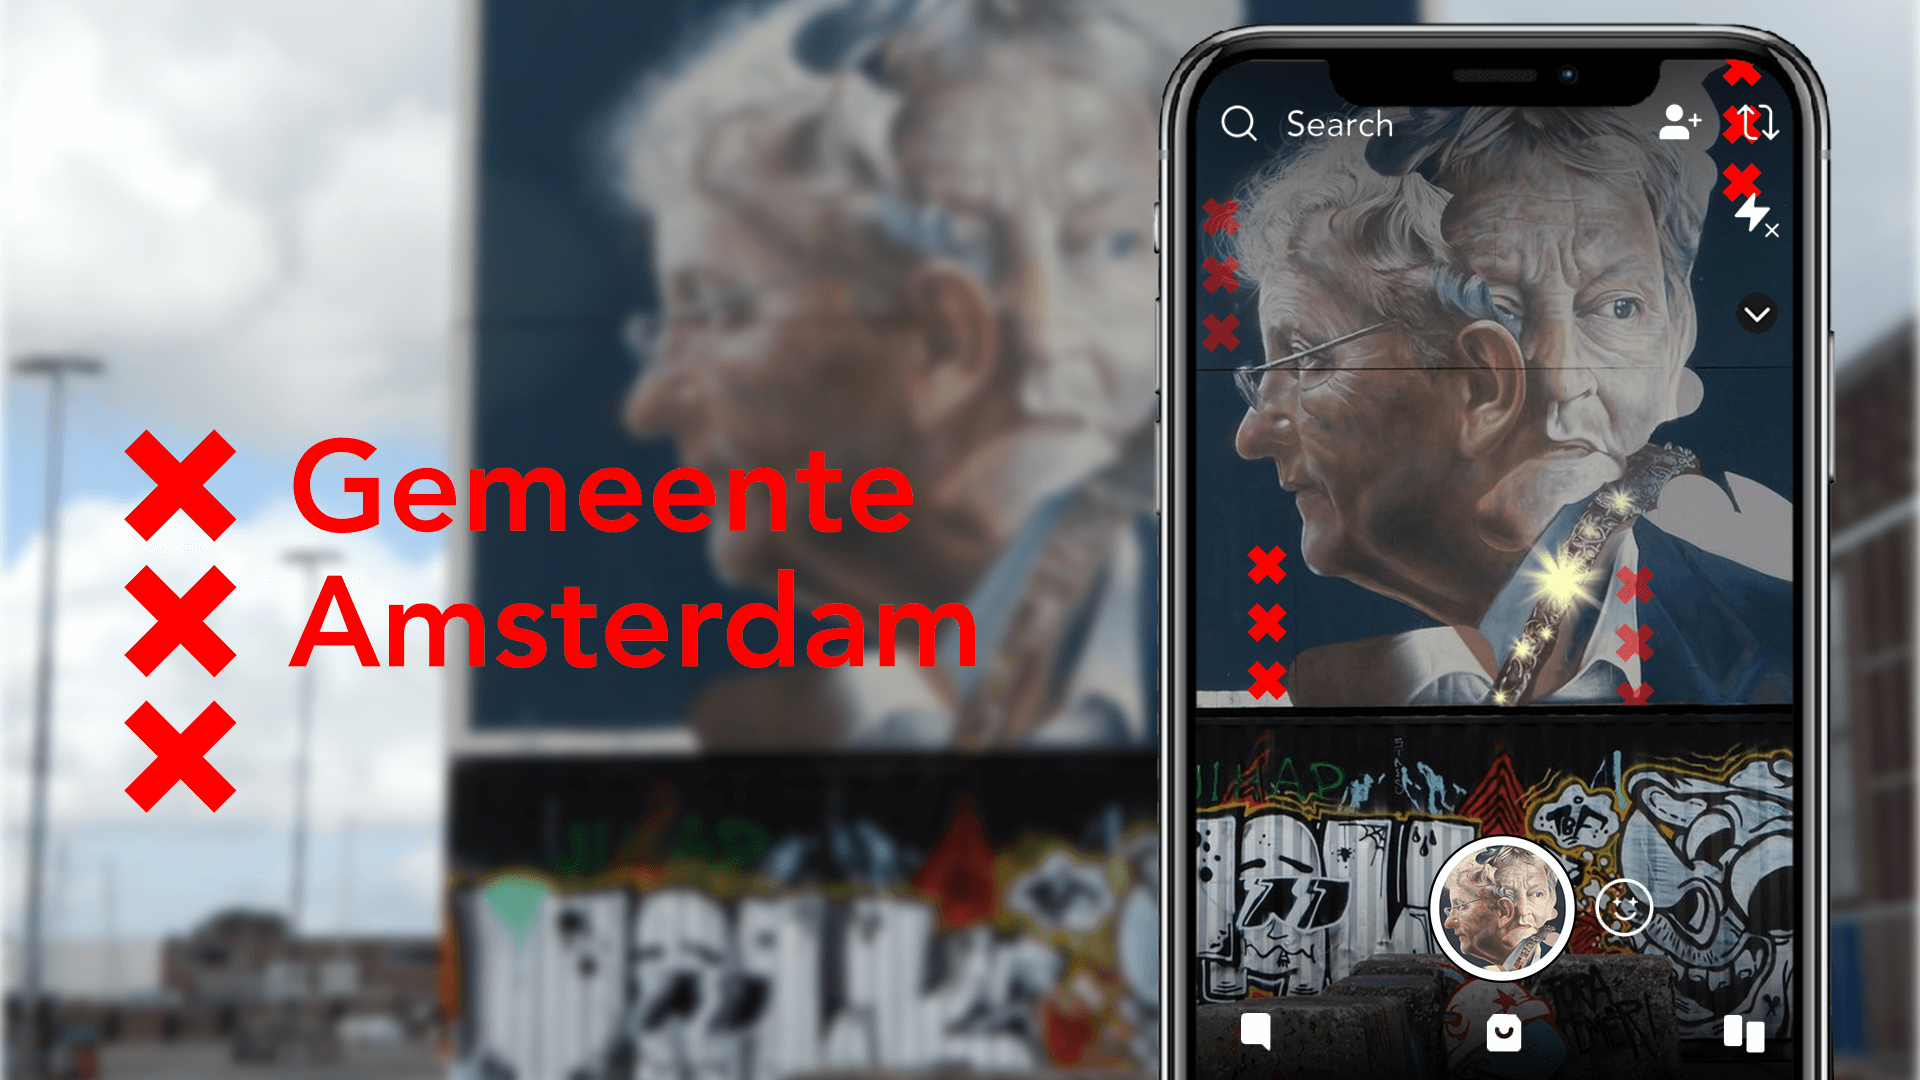 augmented reality cases (Gemeente Amsterdam 1 1)